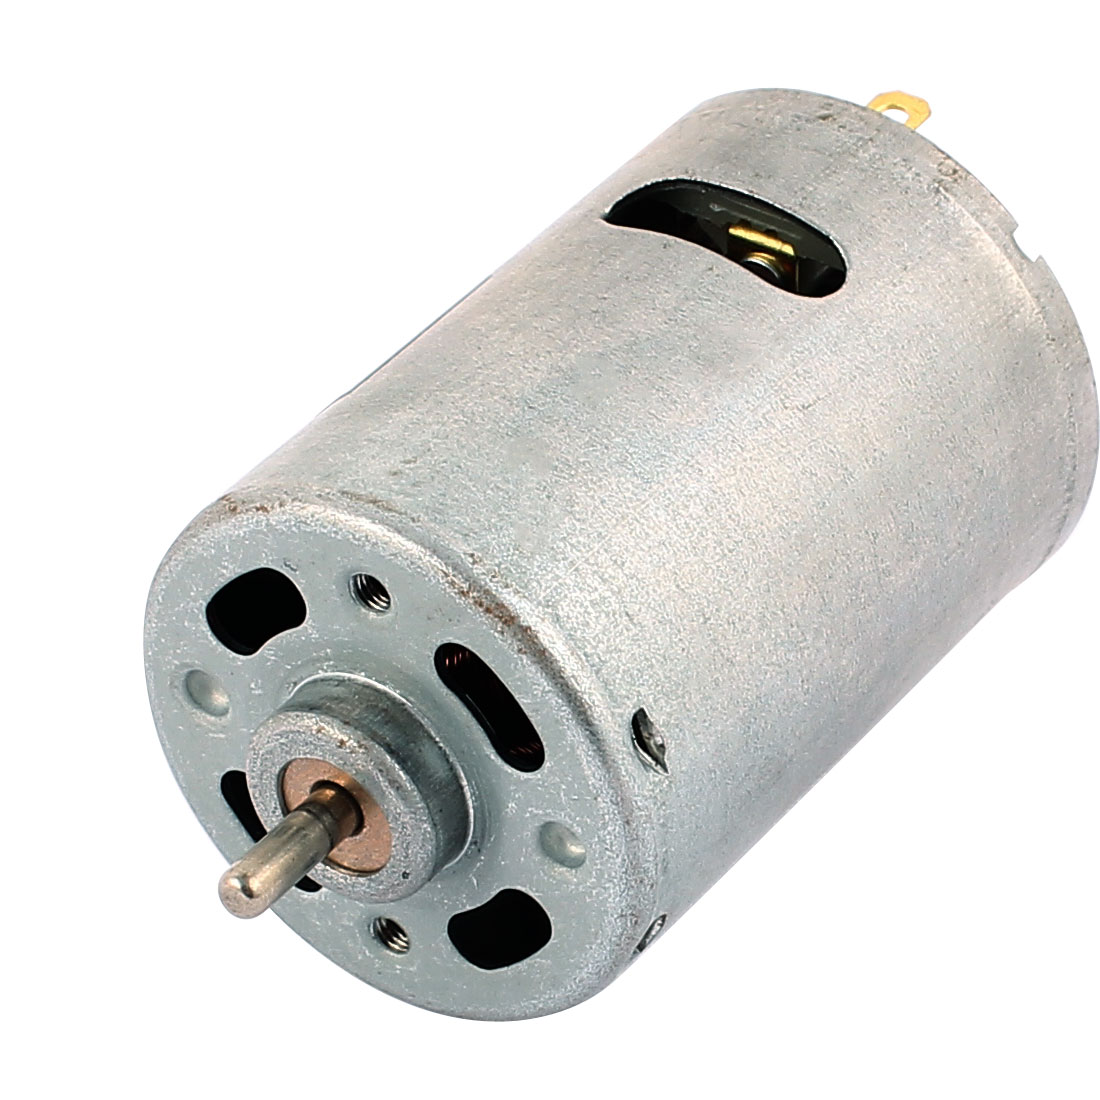 R540 DC 12V 15000R/Min Cylindrical Miniature Electric Magnetic DC Motor